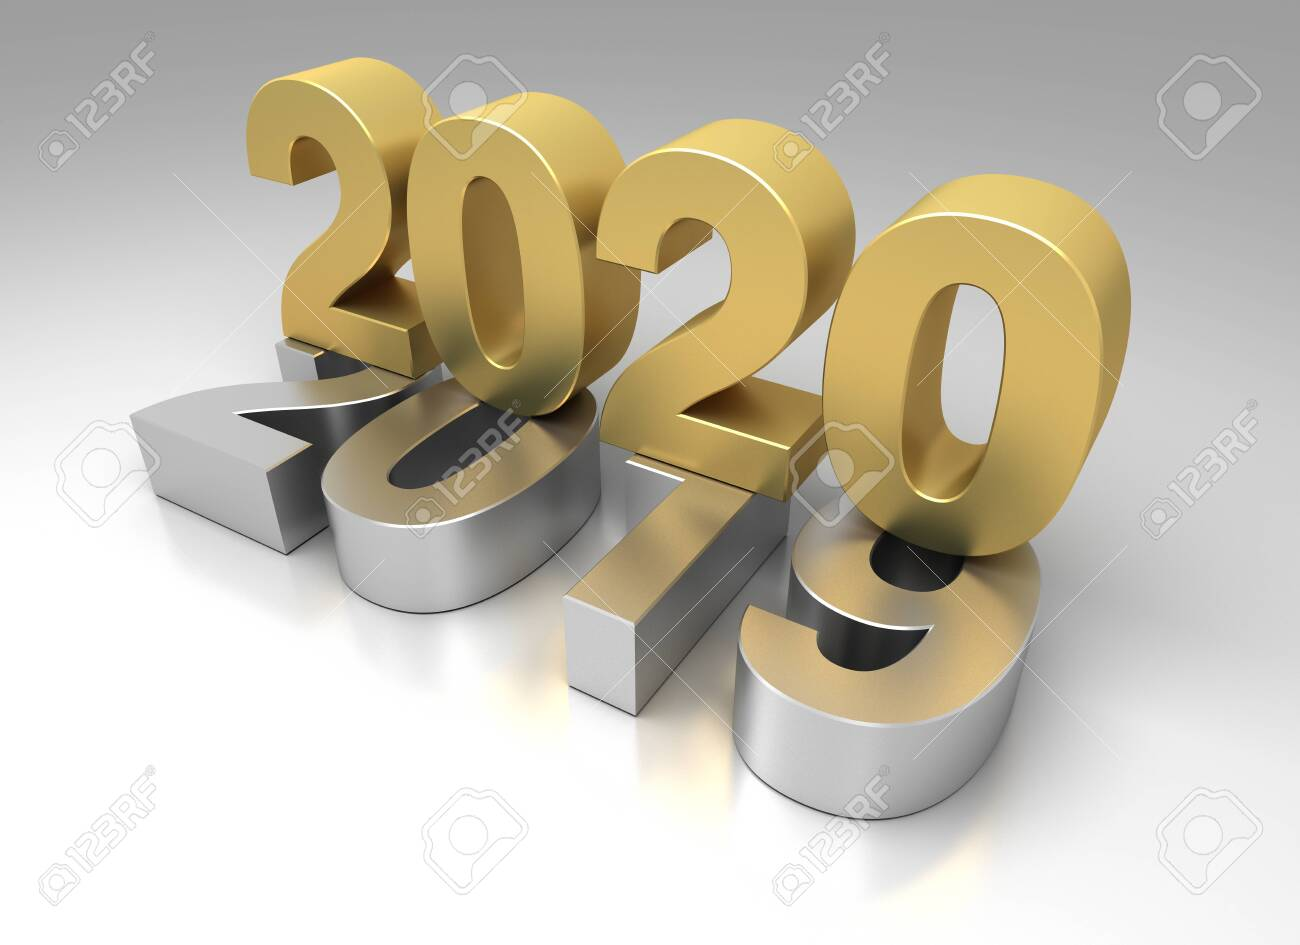 New Year 2020 from 2019 - 142619529